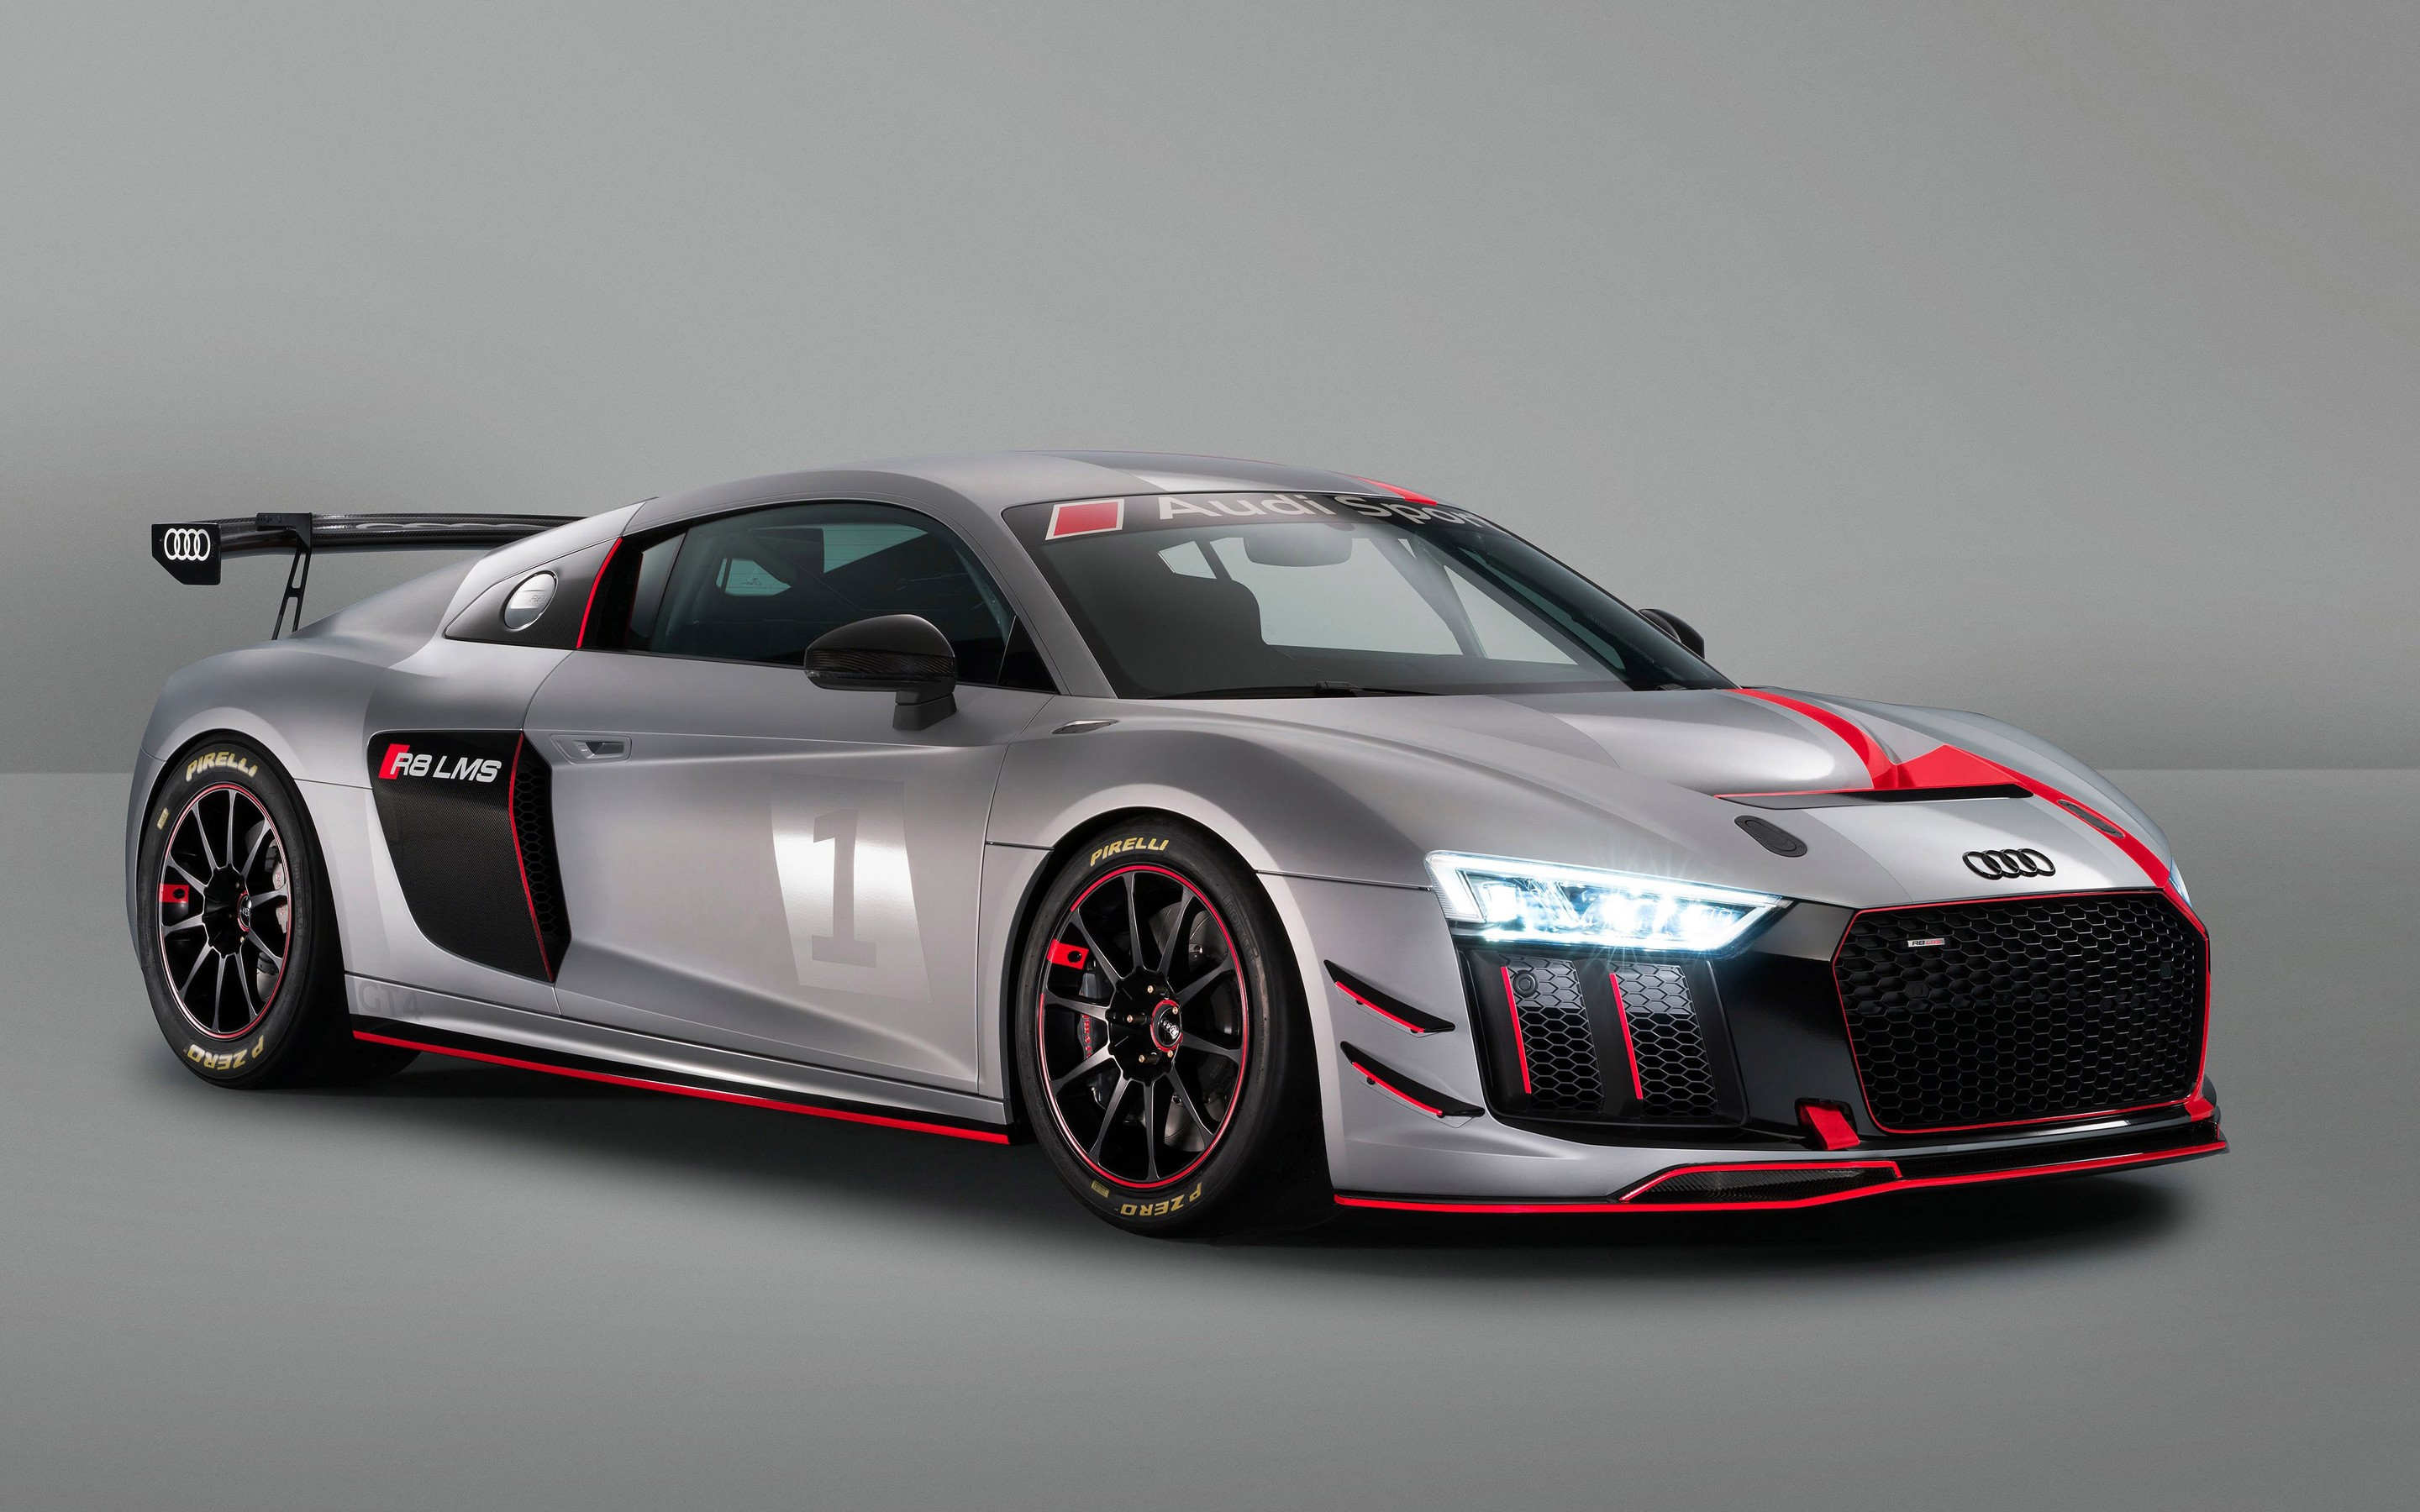 Audi R8 Iphone Wallpaper Hd 2017 Audi R8 Coupe Audi Sport Edition Wallpapers Hd